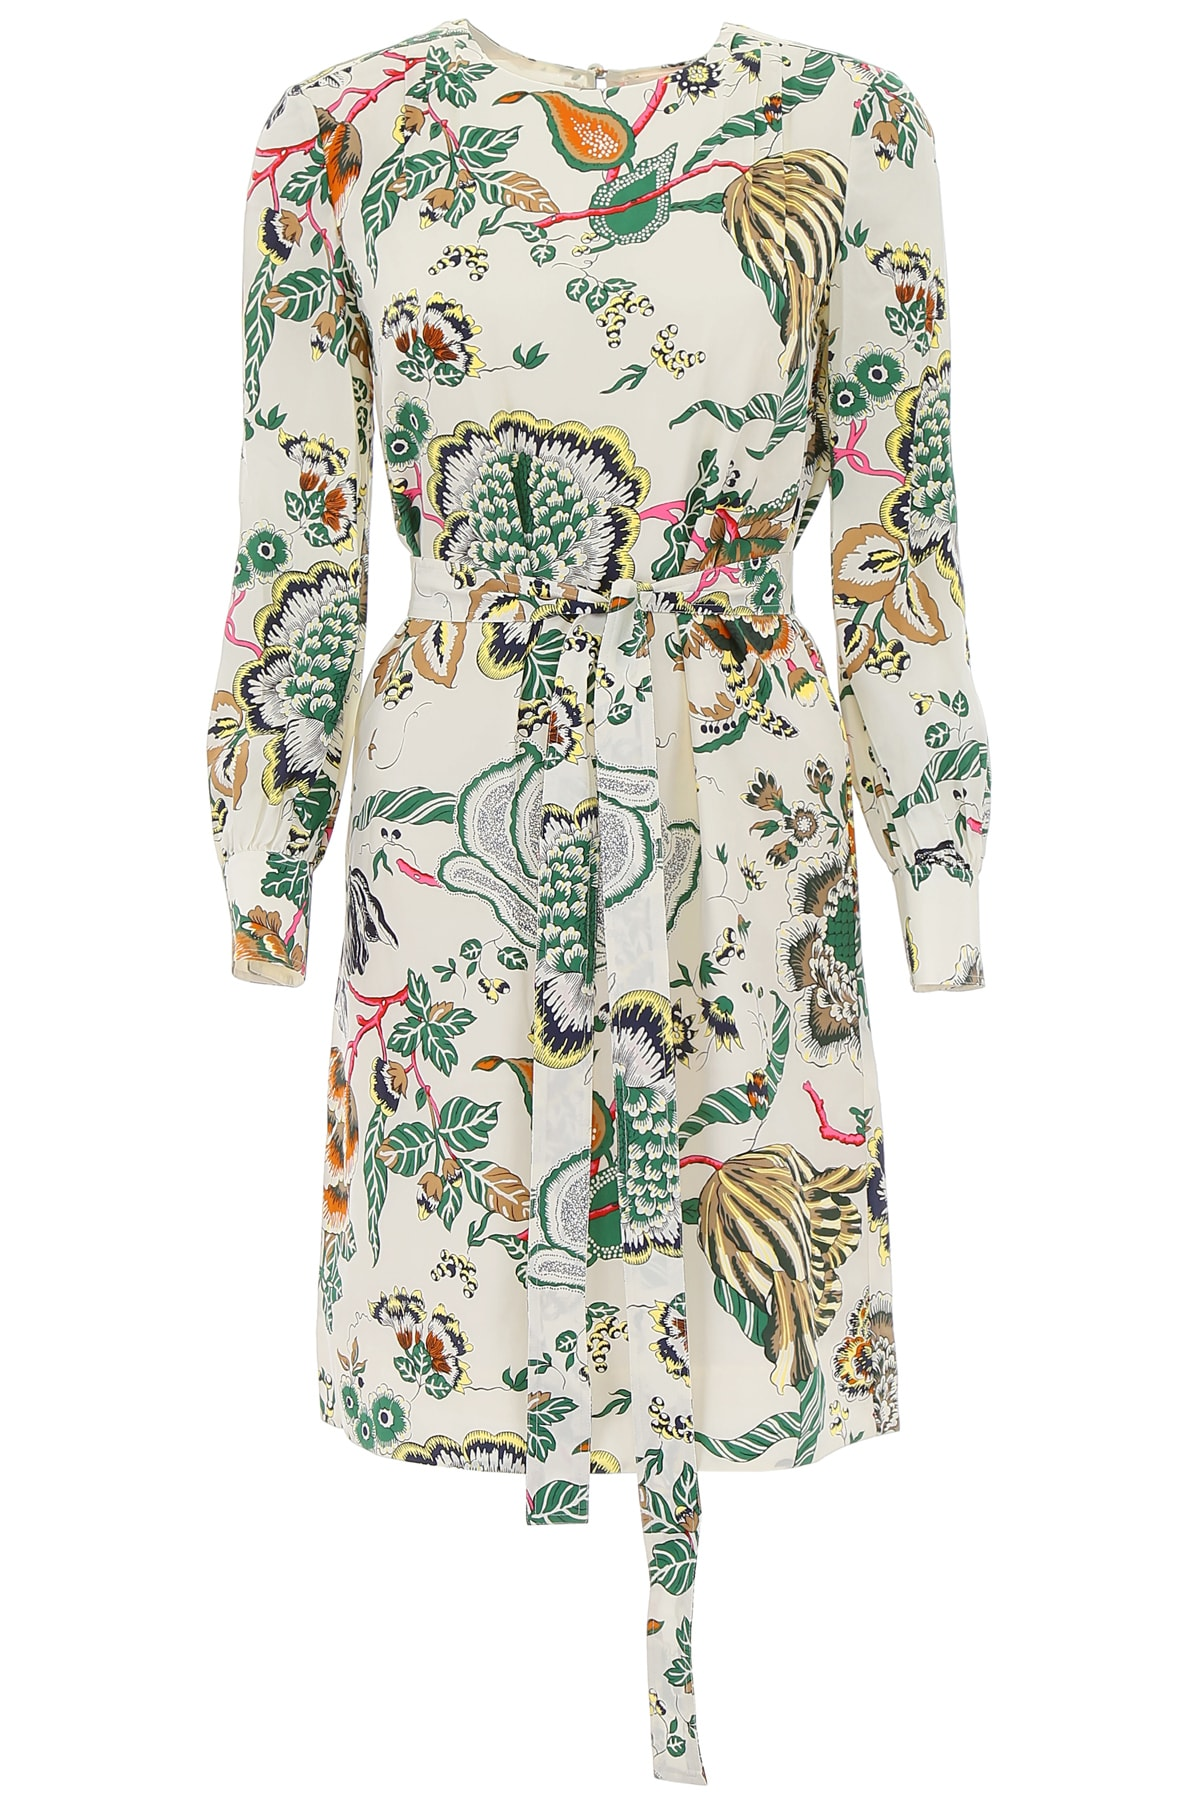 Tory Burch Happy Times Dress